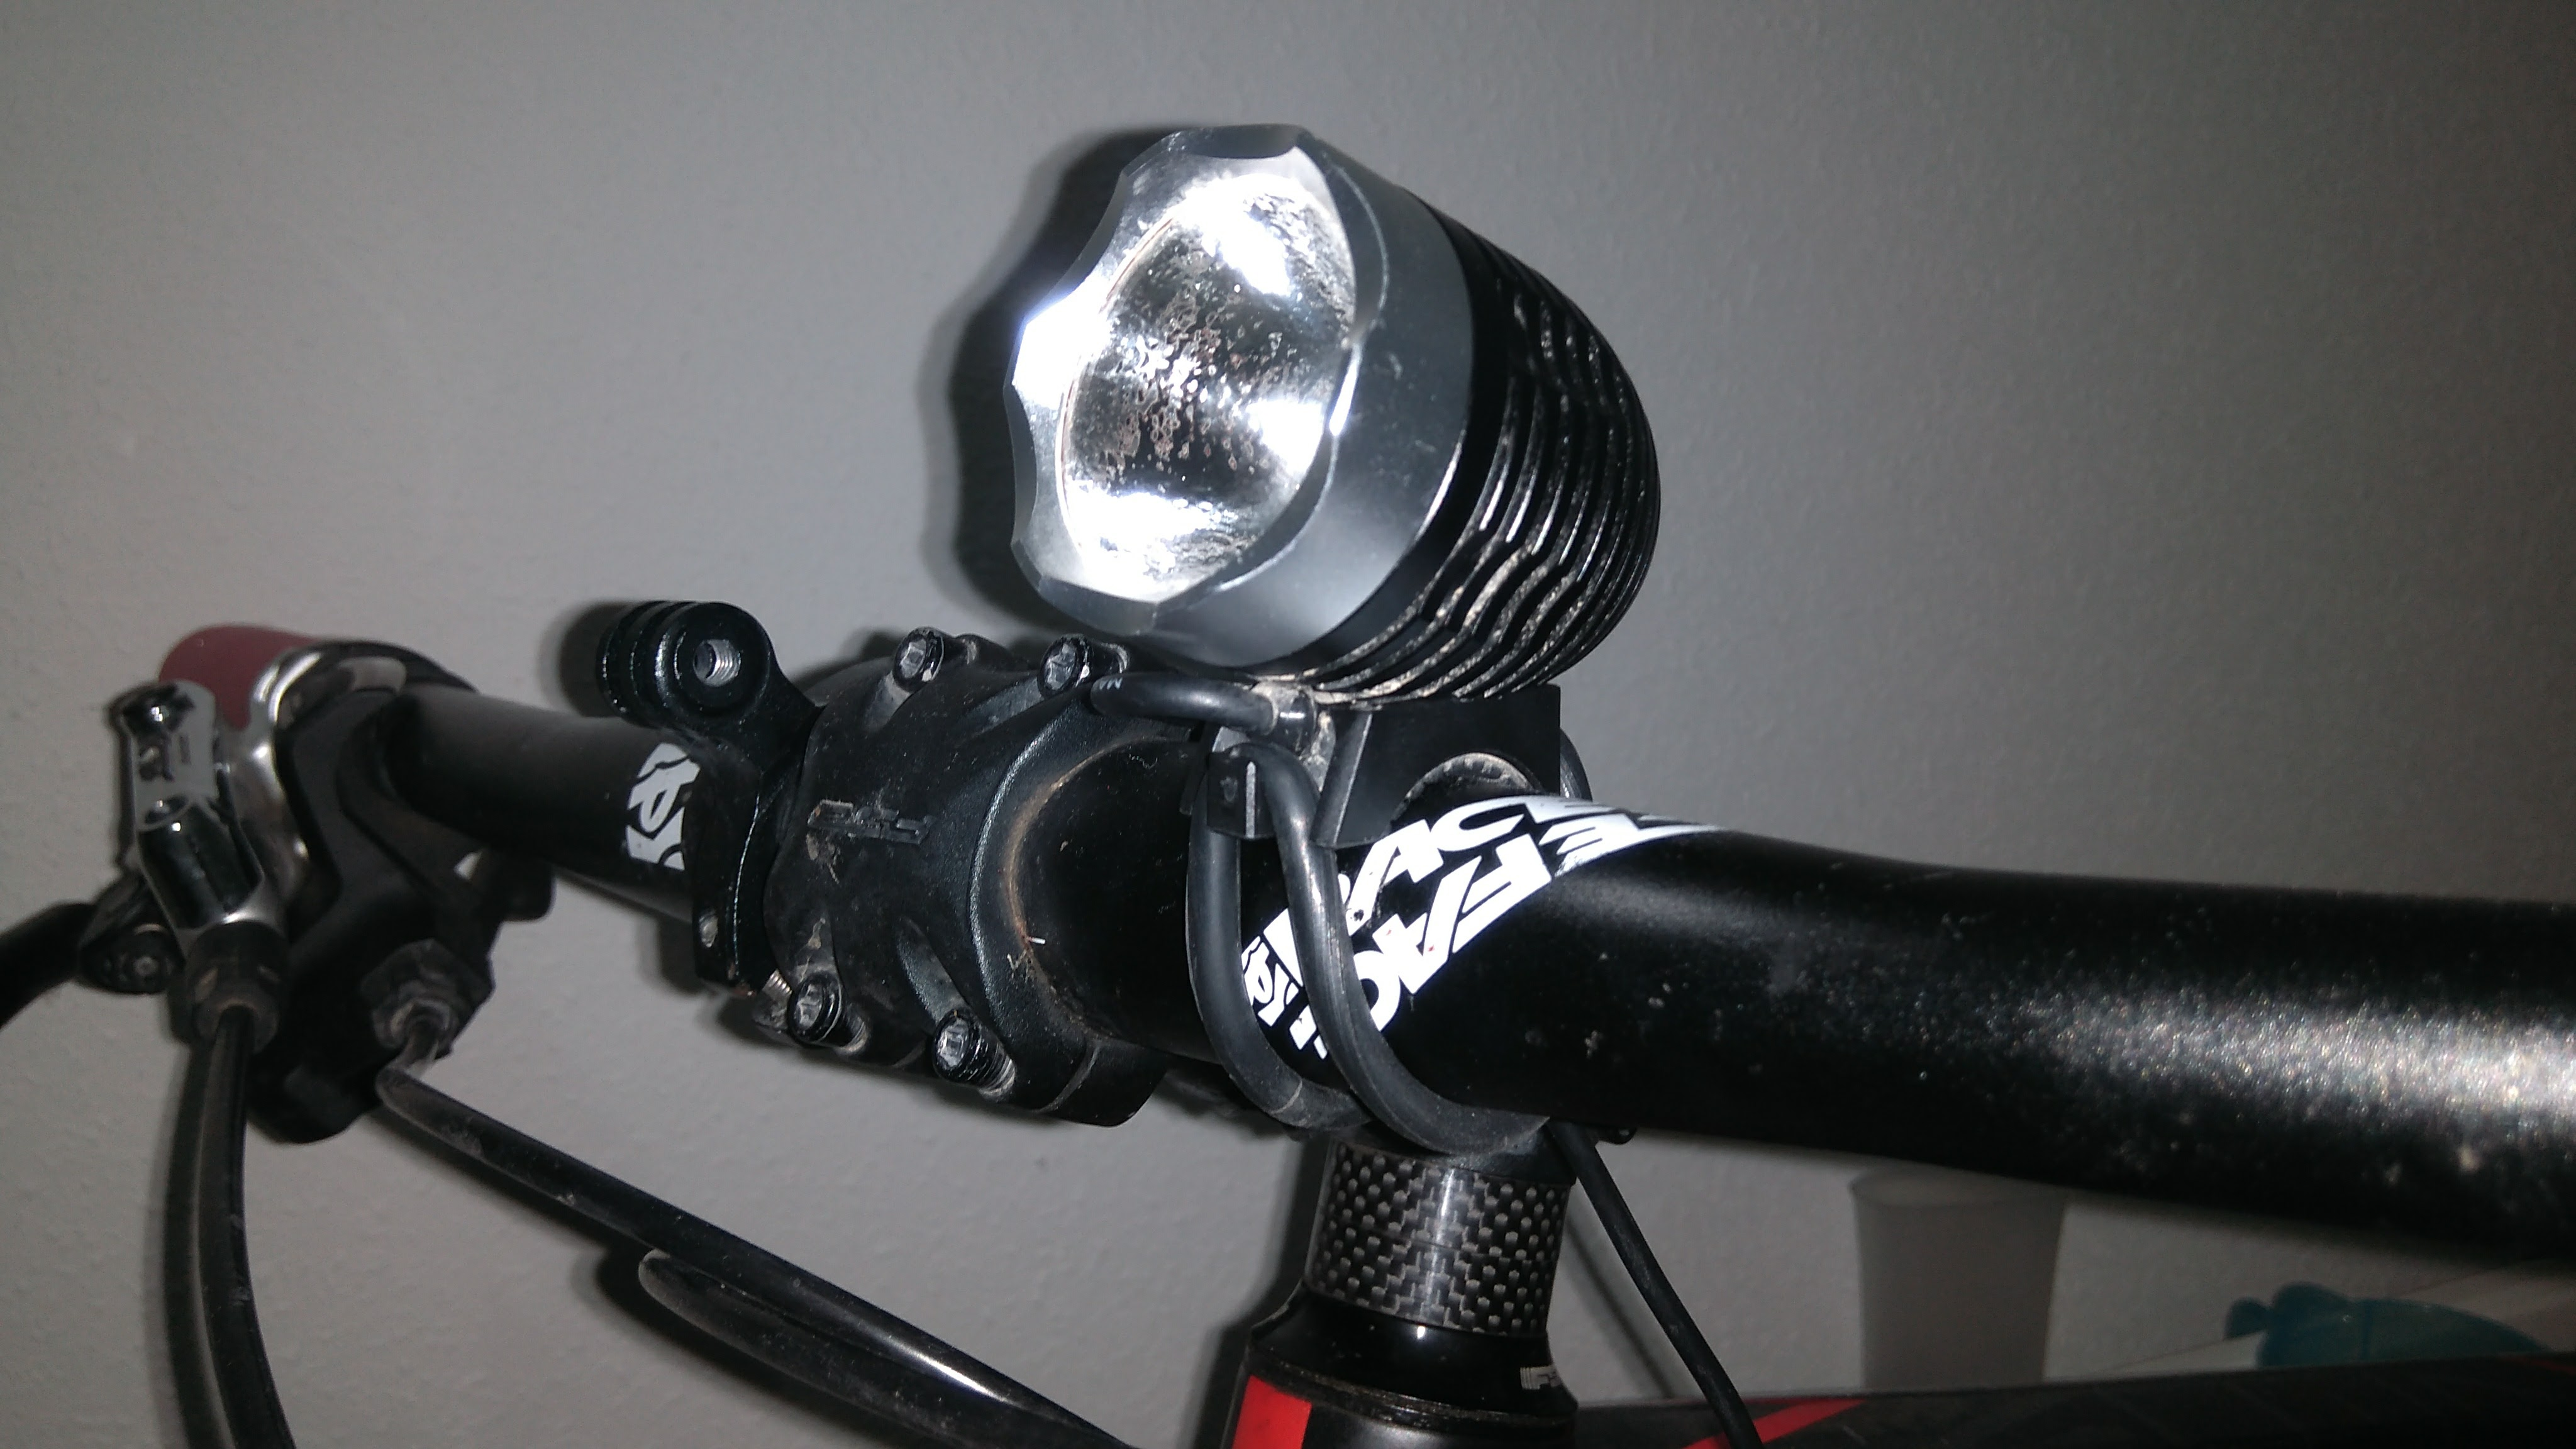 Picture of Bike Lamp With GoPro Mounts